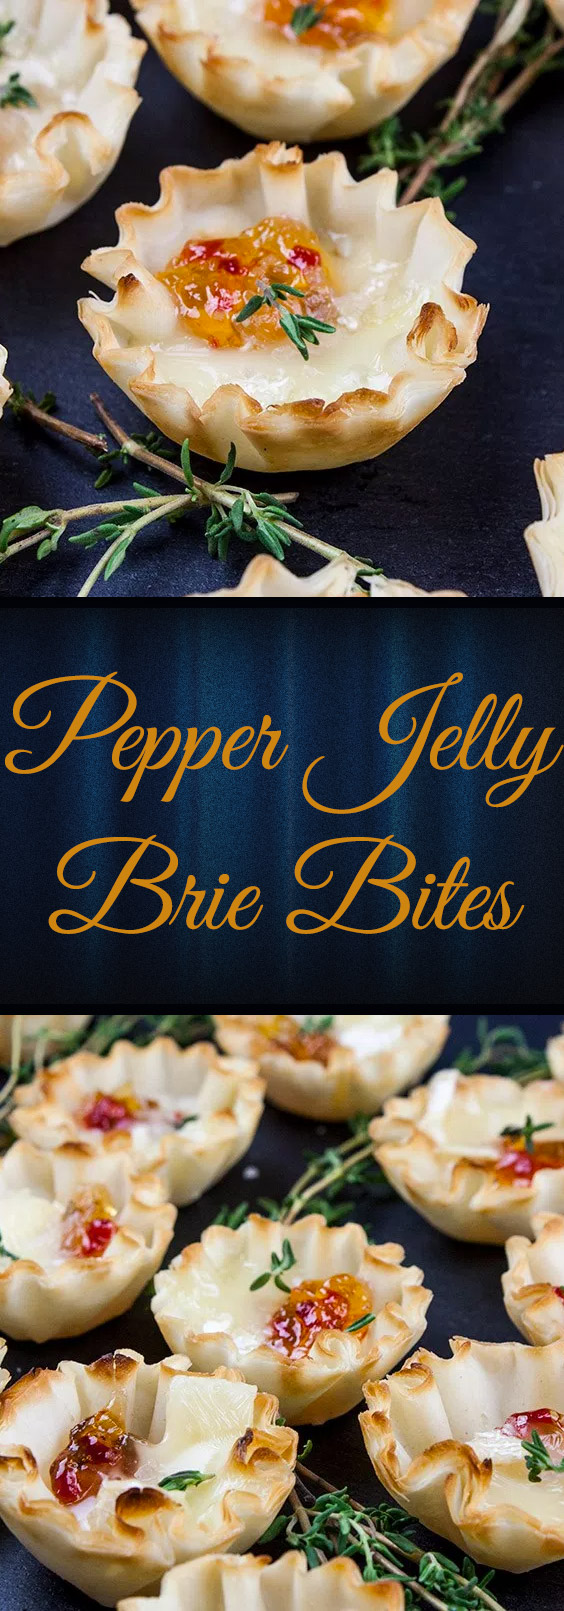 Pepper Jelly Brie Bites - Crispy phyllo shells filled with slightly spicy pepper jelly topped with creamy brie cheese. Sweet and savory bites of flaky deliciousness!